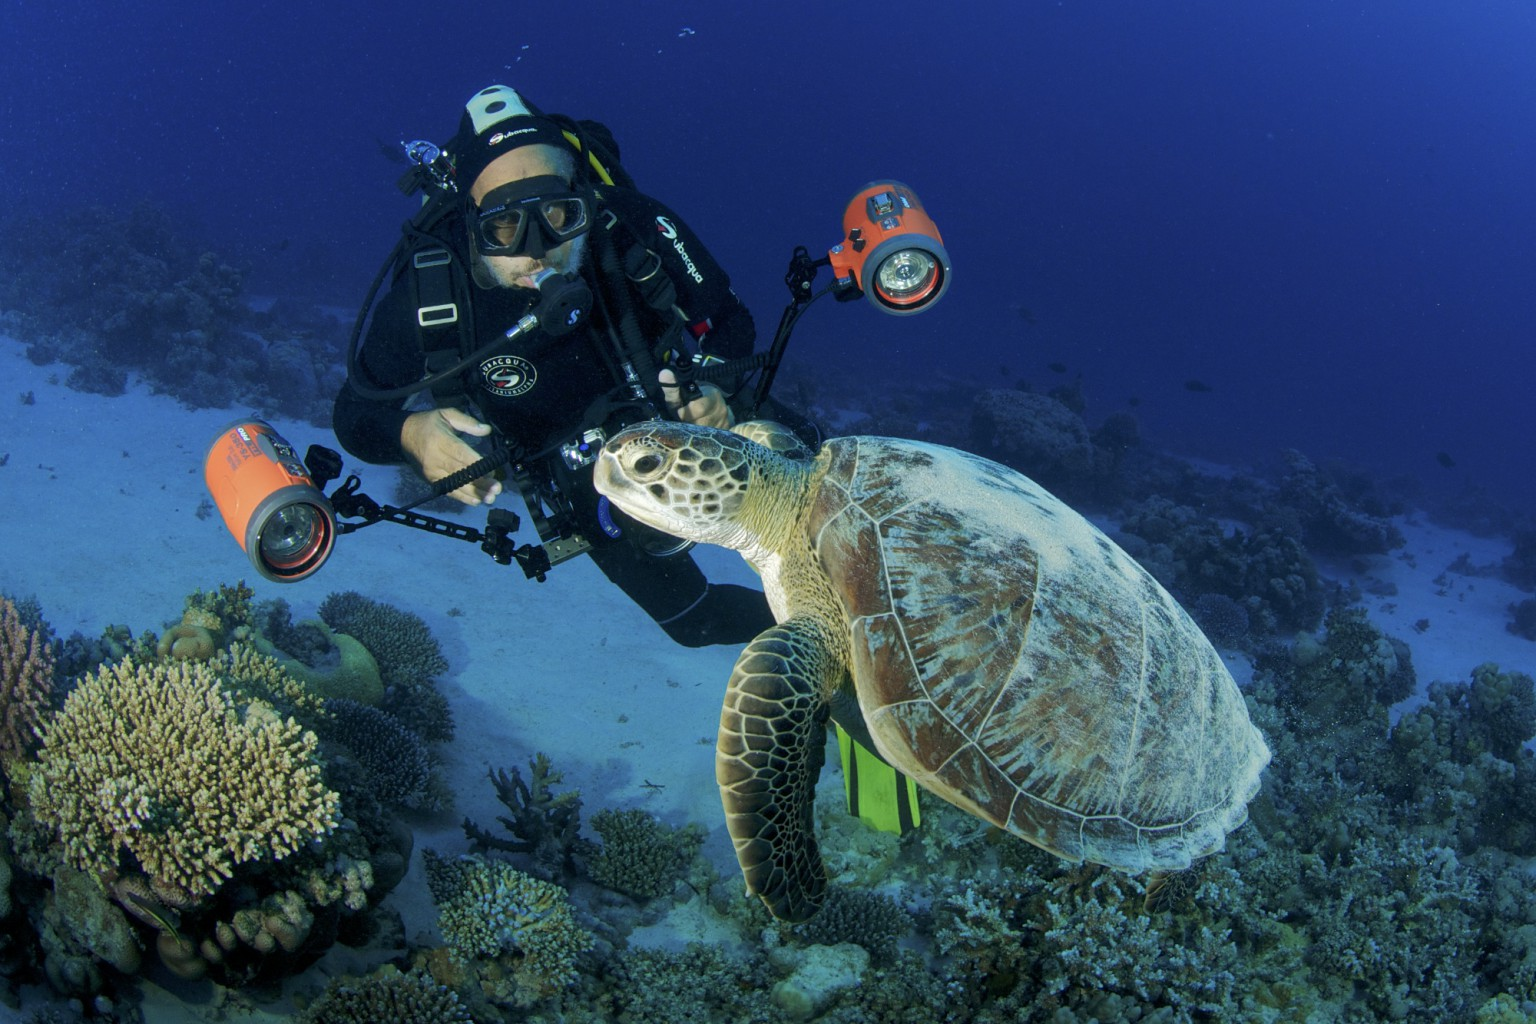 Sea Turtle & Underwater Photographer, Marsa Shagra Reef, Red Sea, Egypt